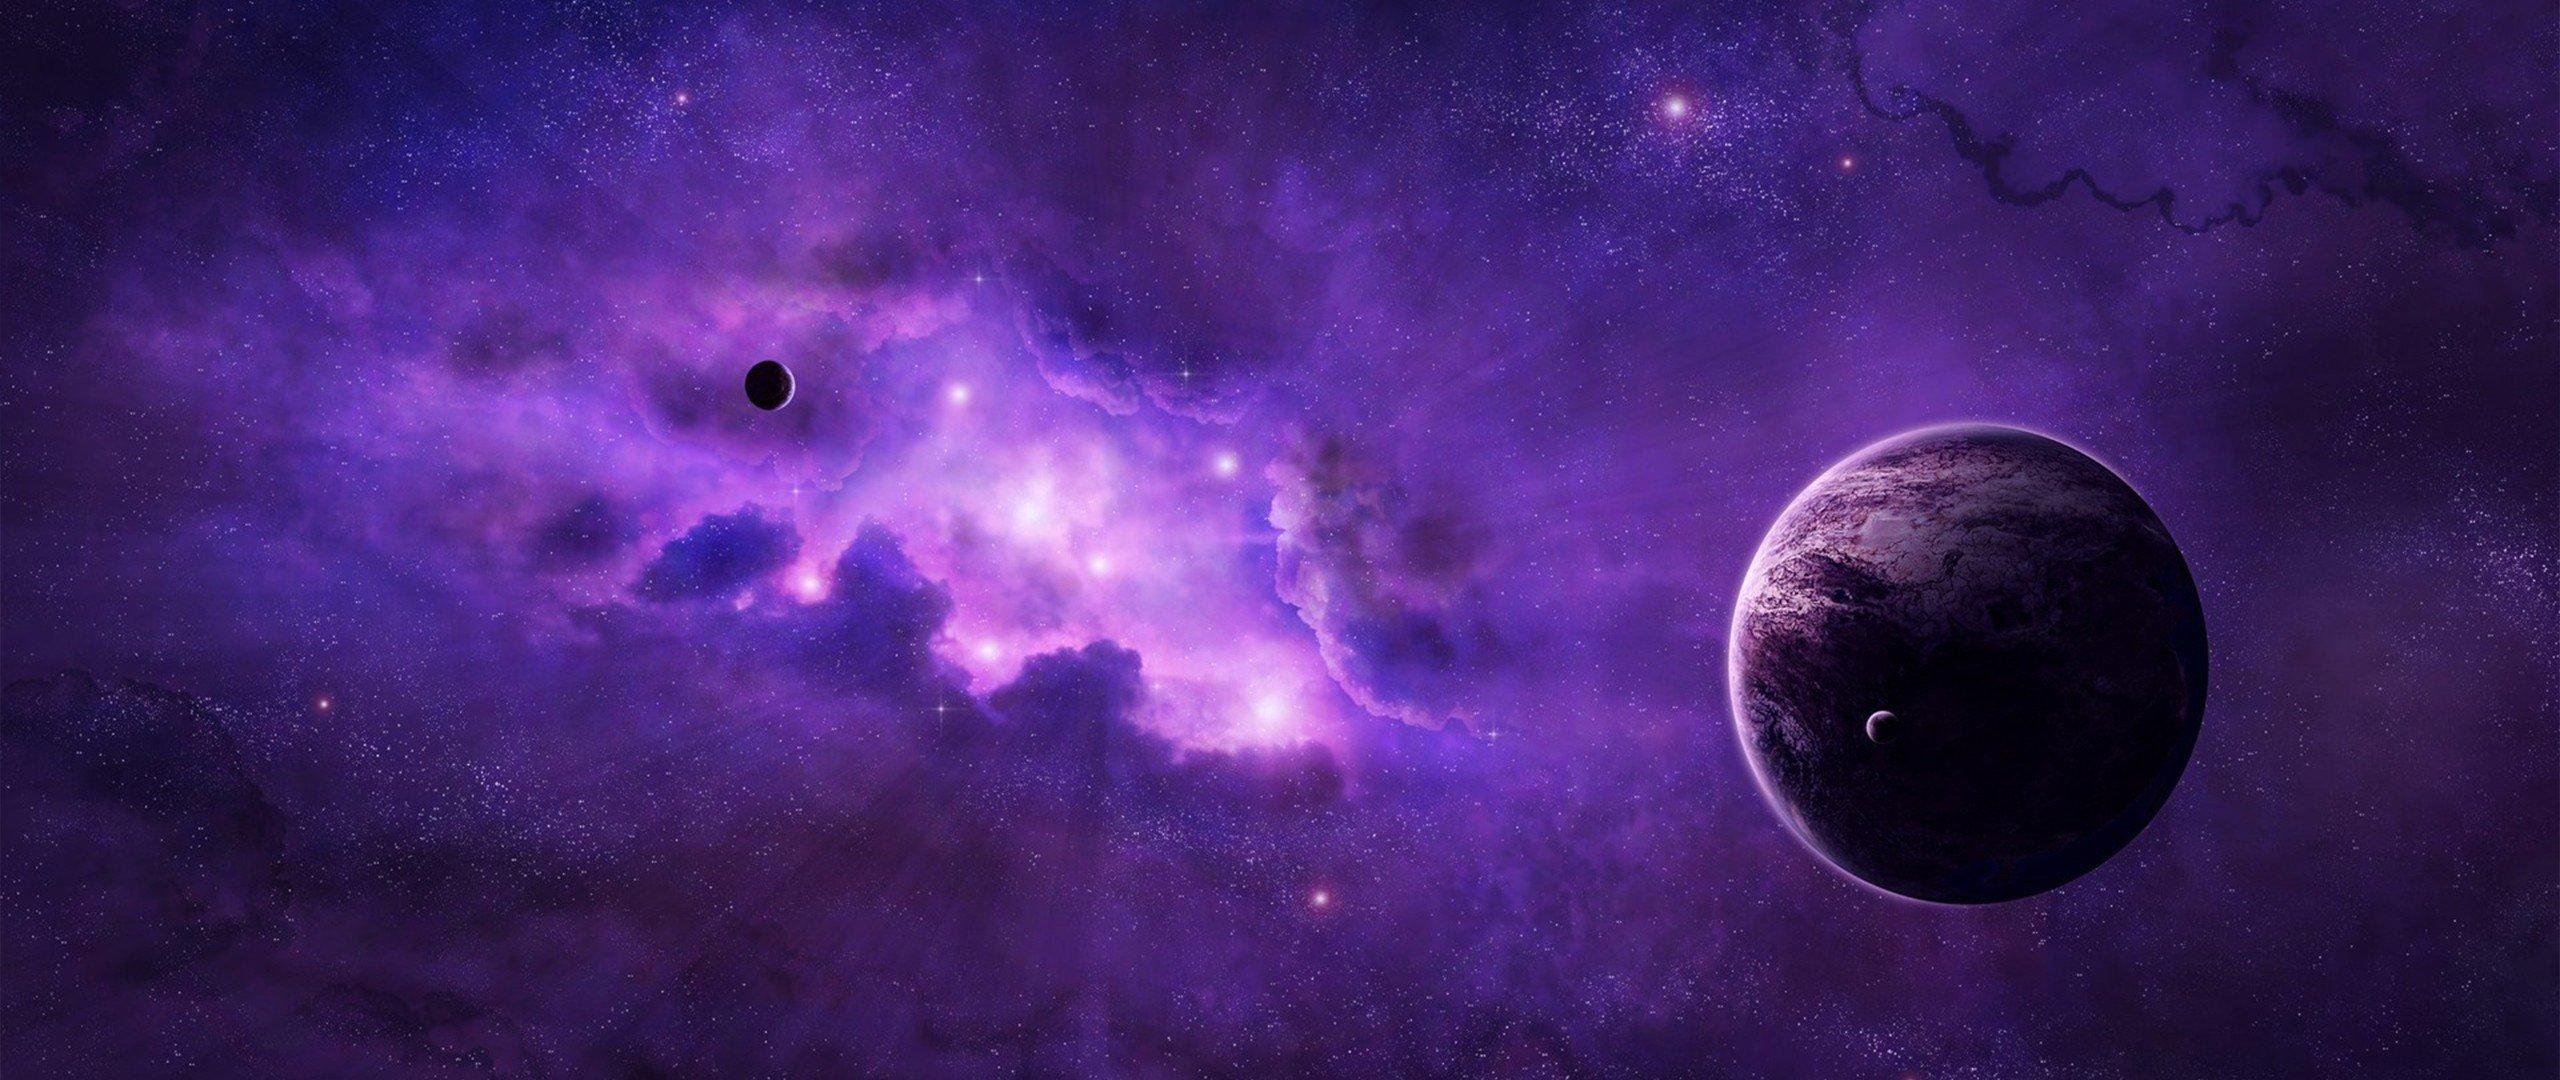 Ultra wide space hd wallpapers desktop and mobile - Purple space wallpaper ...